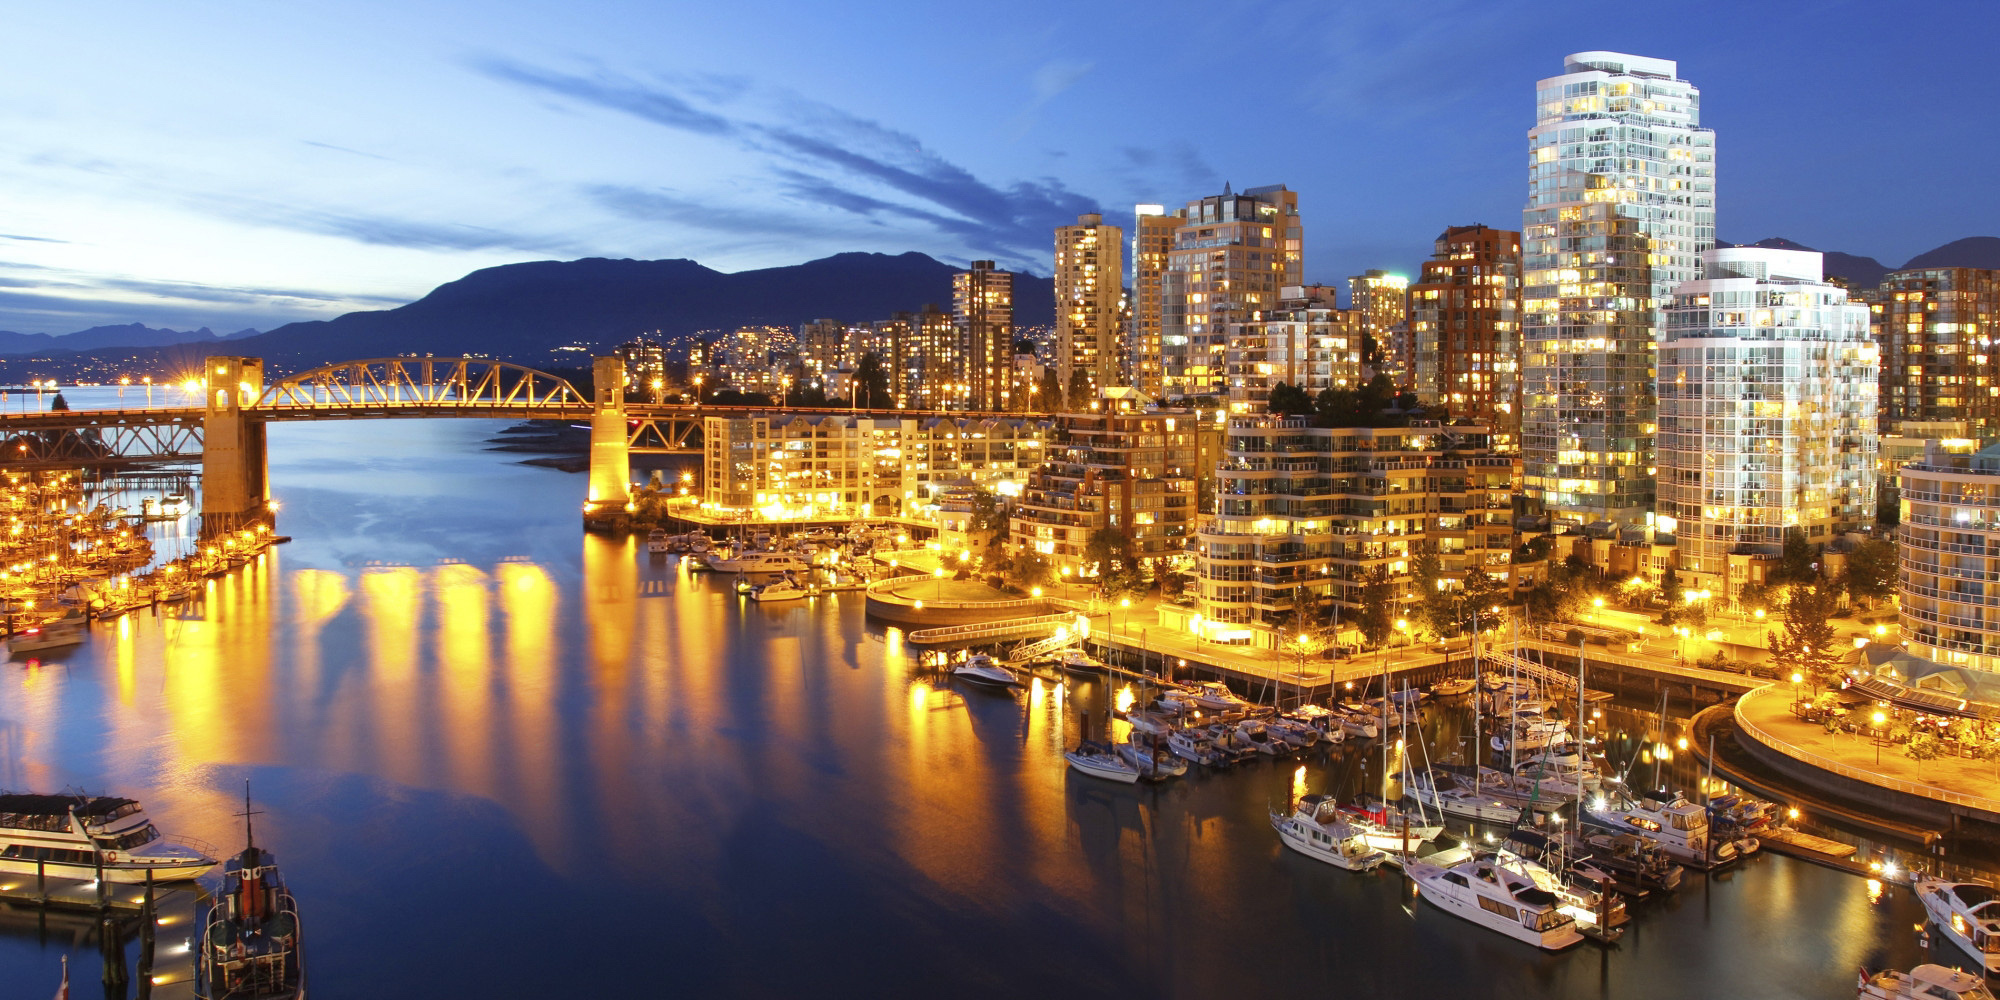 - Discover Vancouver. Located at the downtown waterfront of Vancouver, our luxury hotel's rooms and suites offer modern comfort with sweeping city, harbour or mountain views. Complete with luxurious amenities as well as spacious living and dining areas, a relaxing stay awaits. Embark on a diverse culinary journey with our award-winning restaurants, bar and gourmet marketplaces.panpacific.com